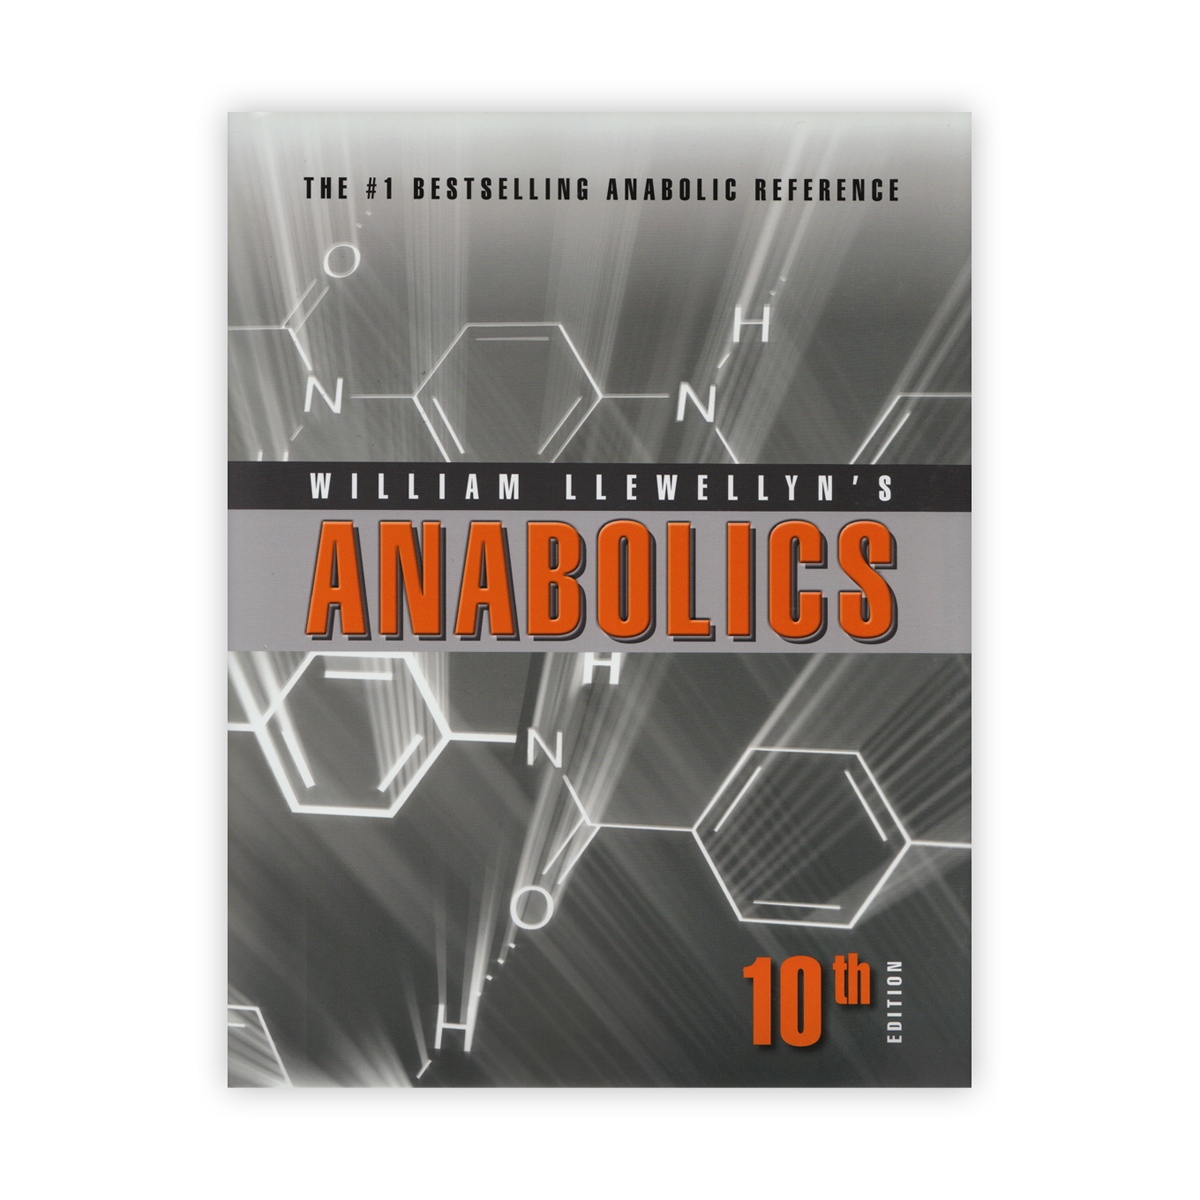 anabolic reference guide pdf ita